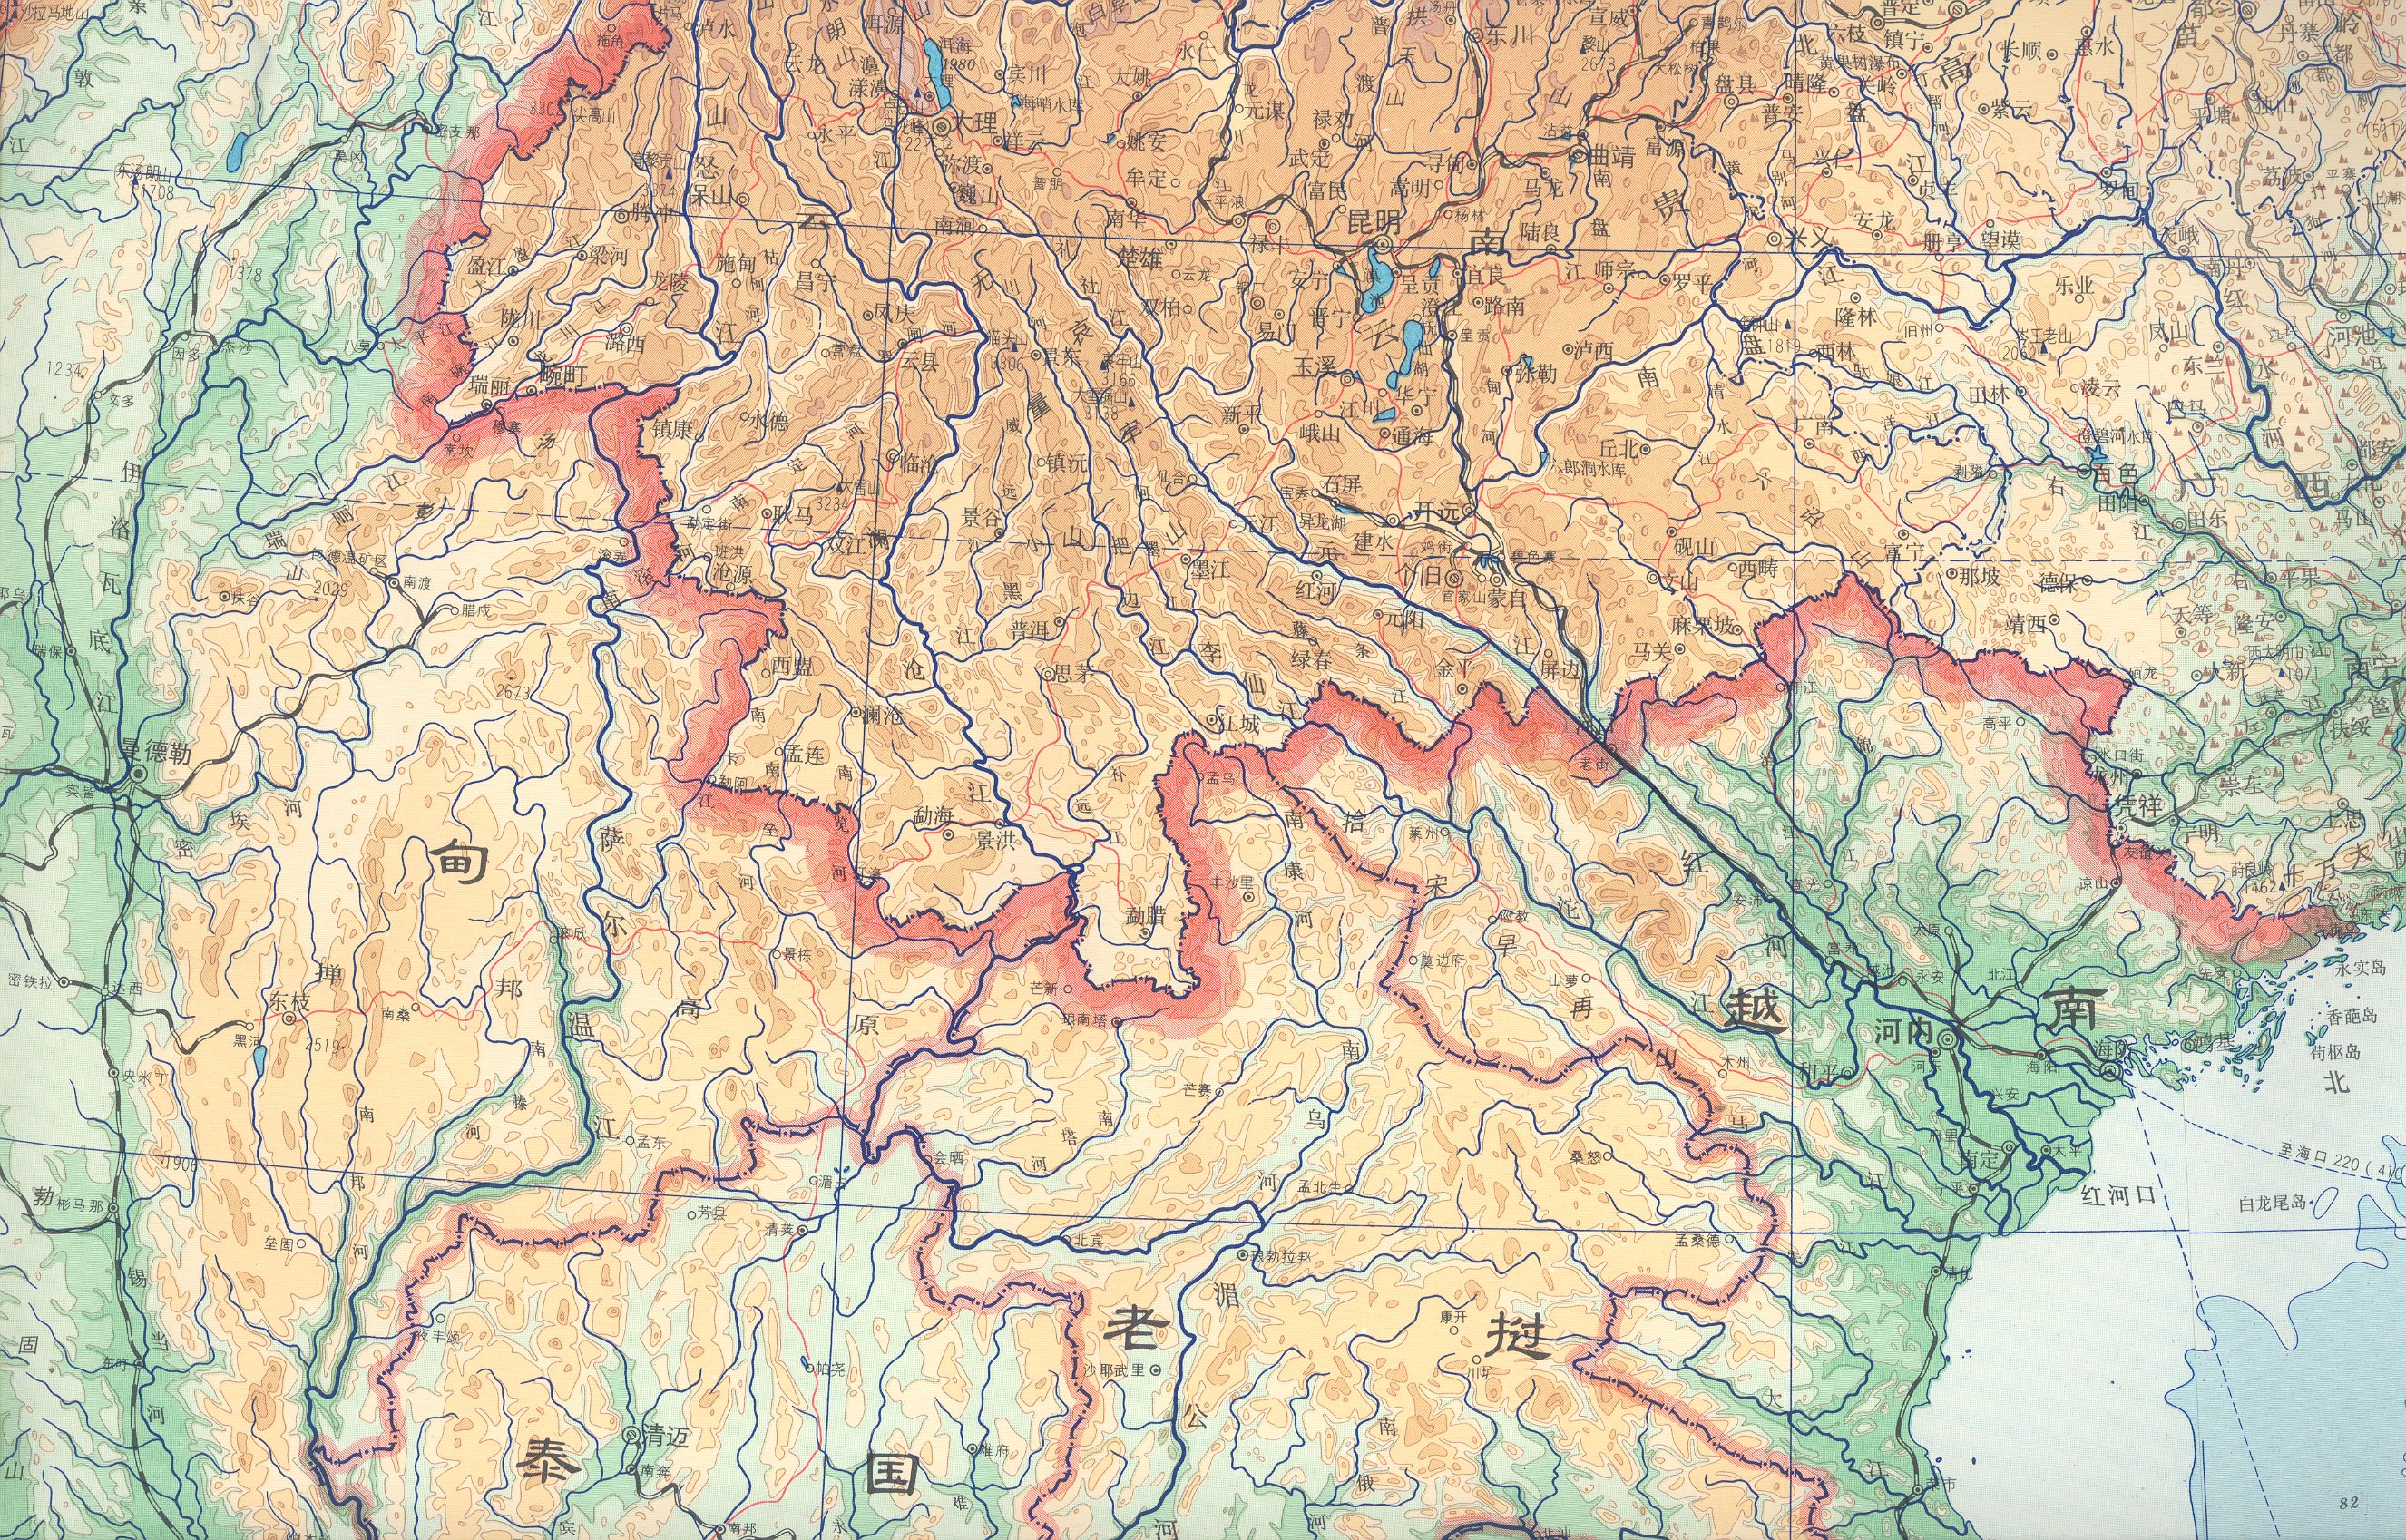 detail from chinese language topographic map of china and northern se asia including the greater northern mon khmer speaking region